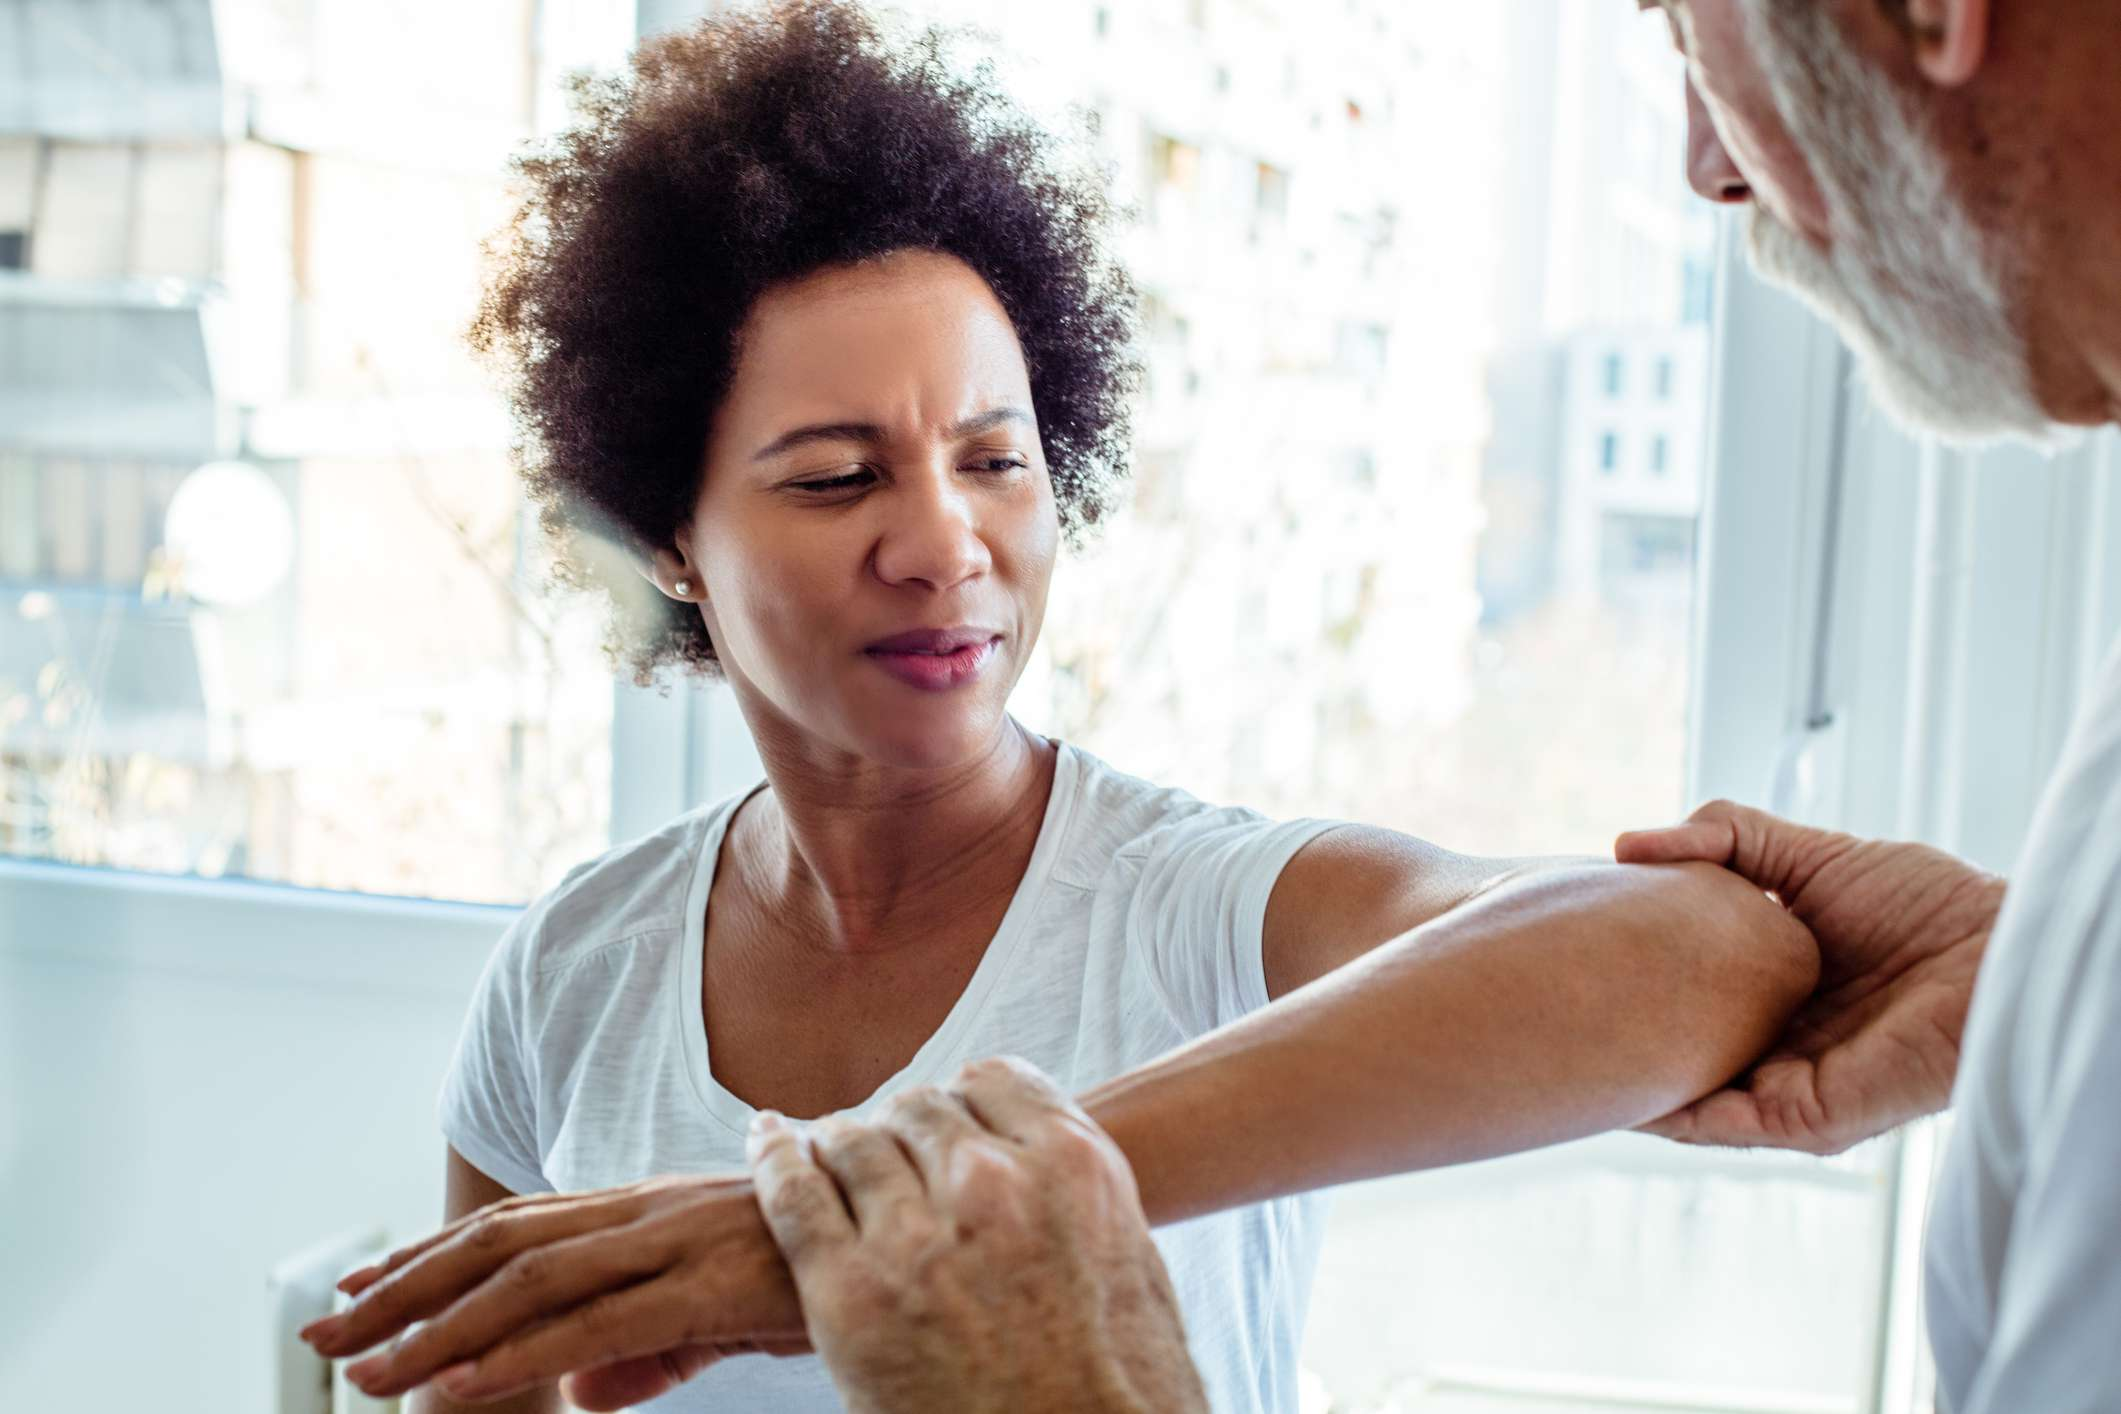 Arthralgia joint pain leads person to see doctor